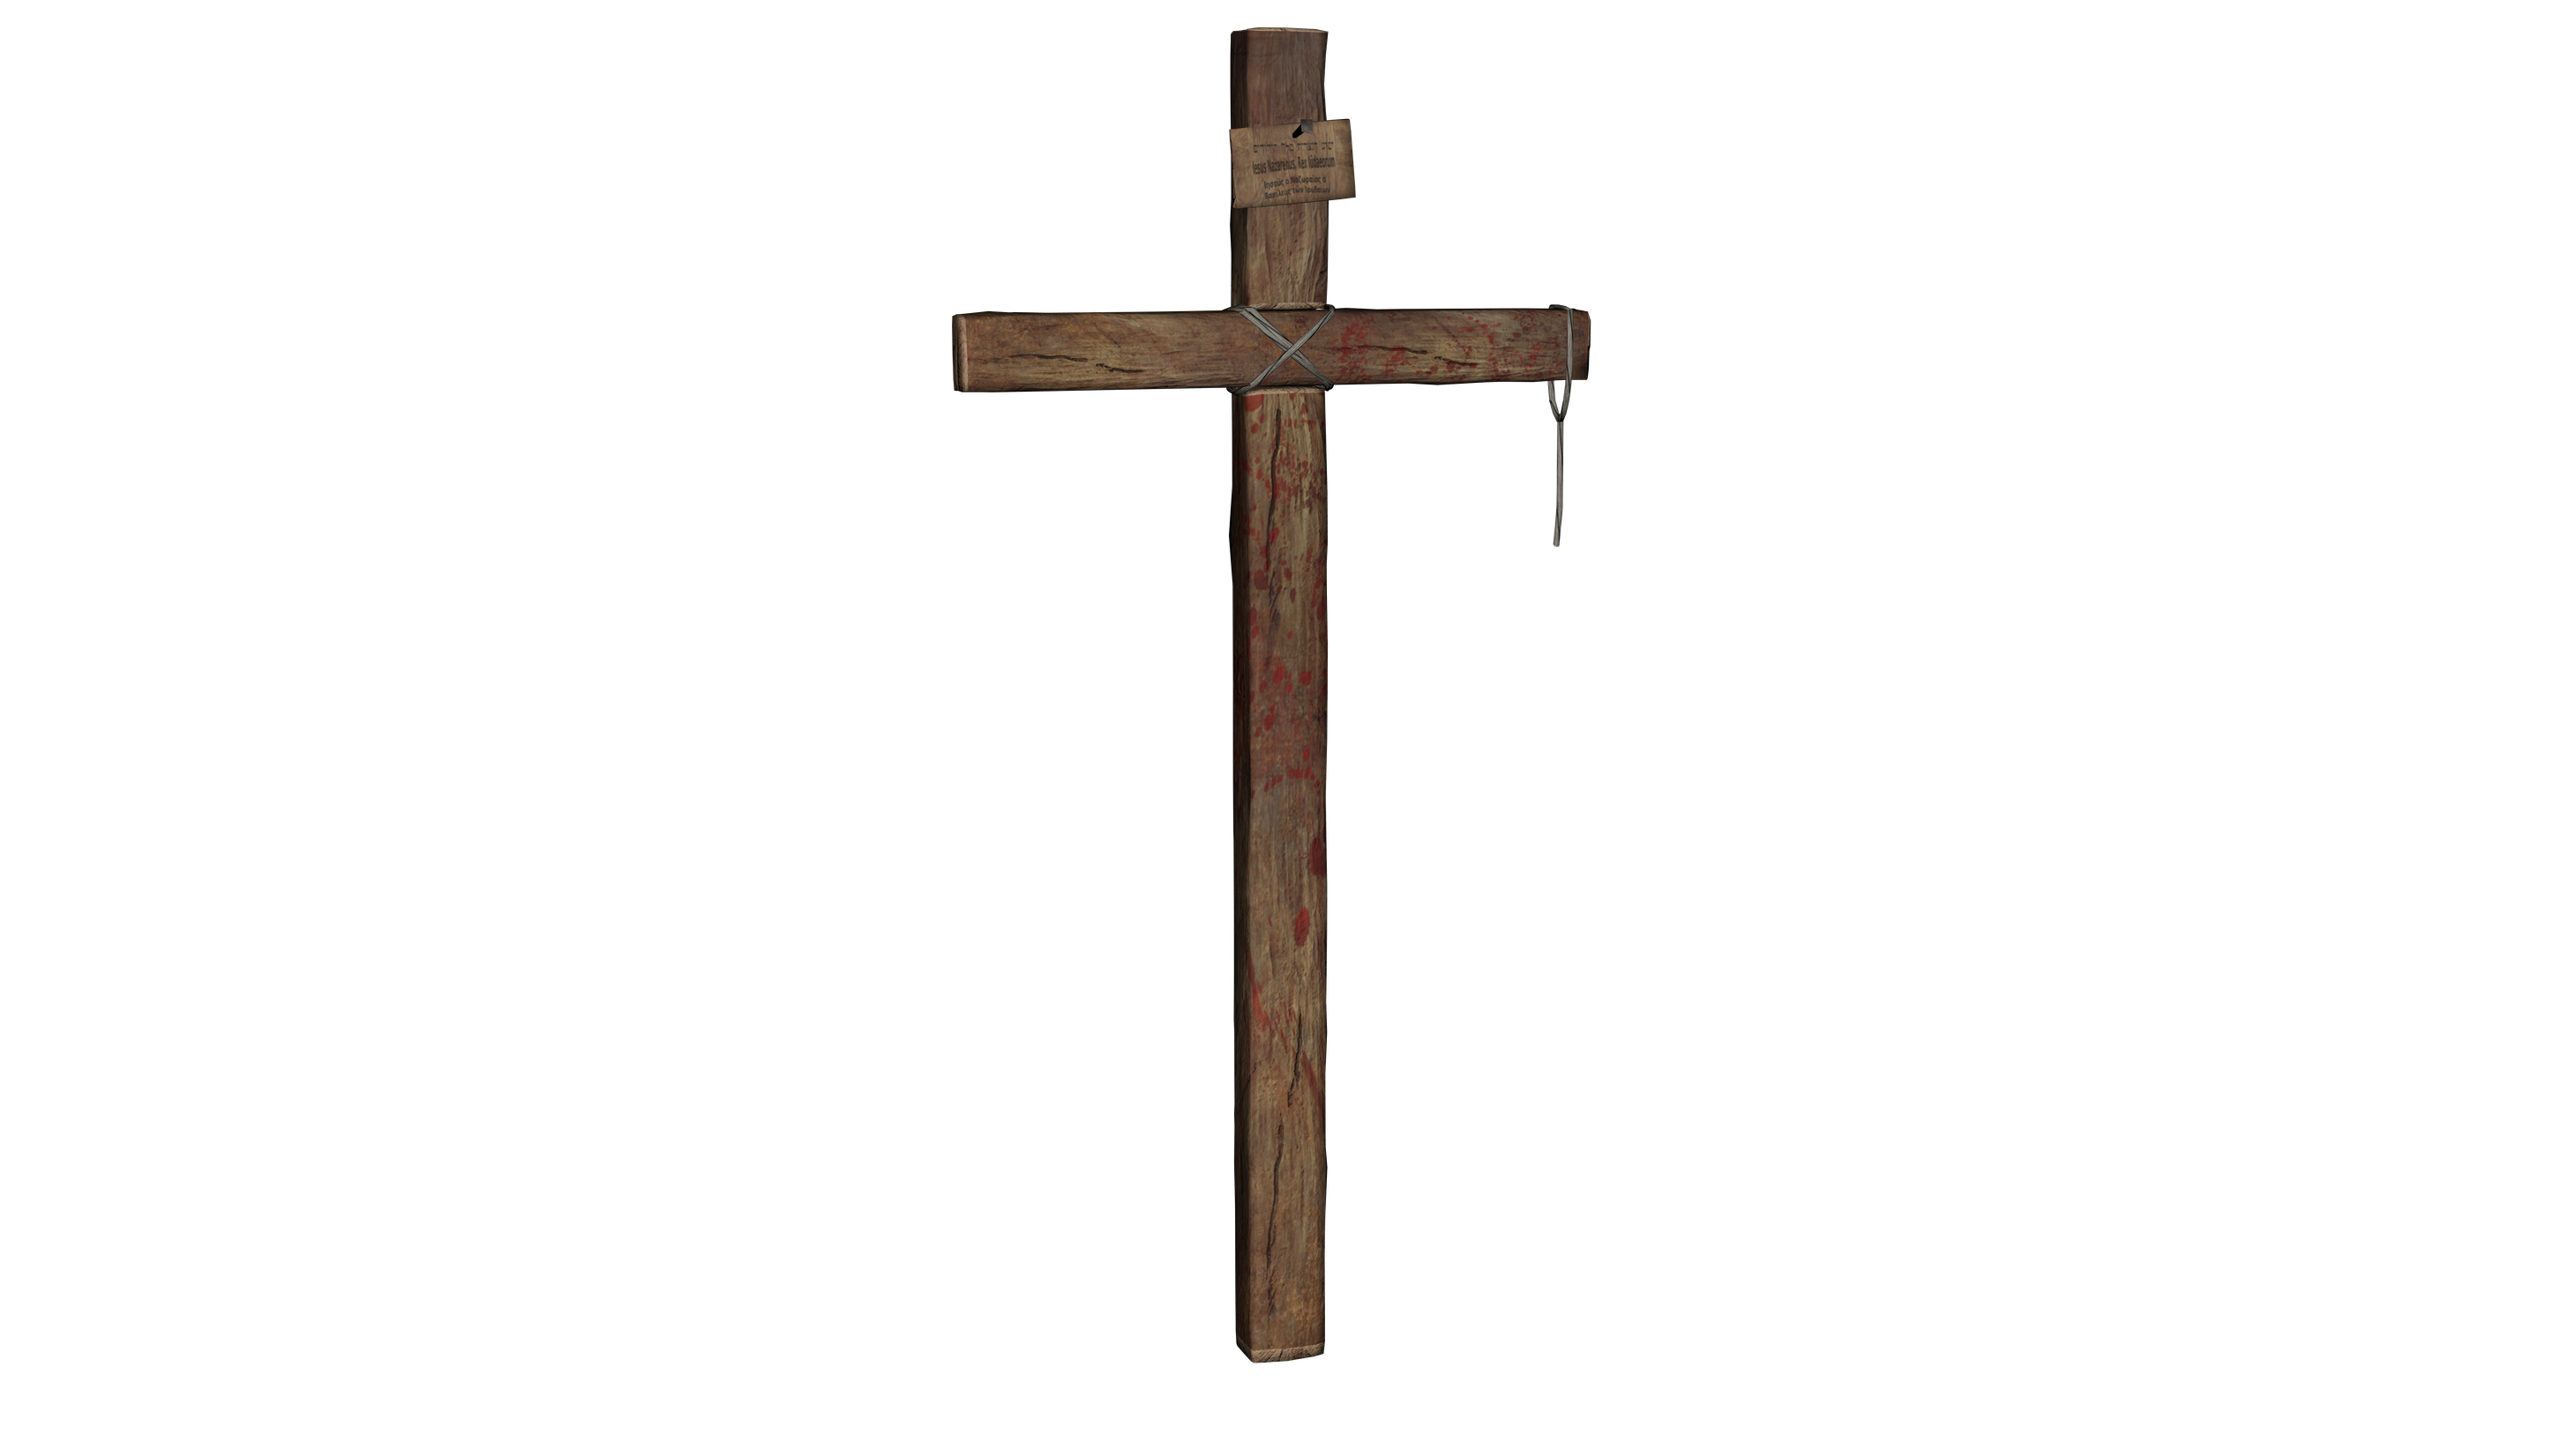 Crucifix clipart wooden cross. Free photo transparent png